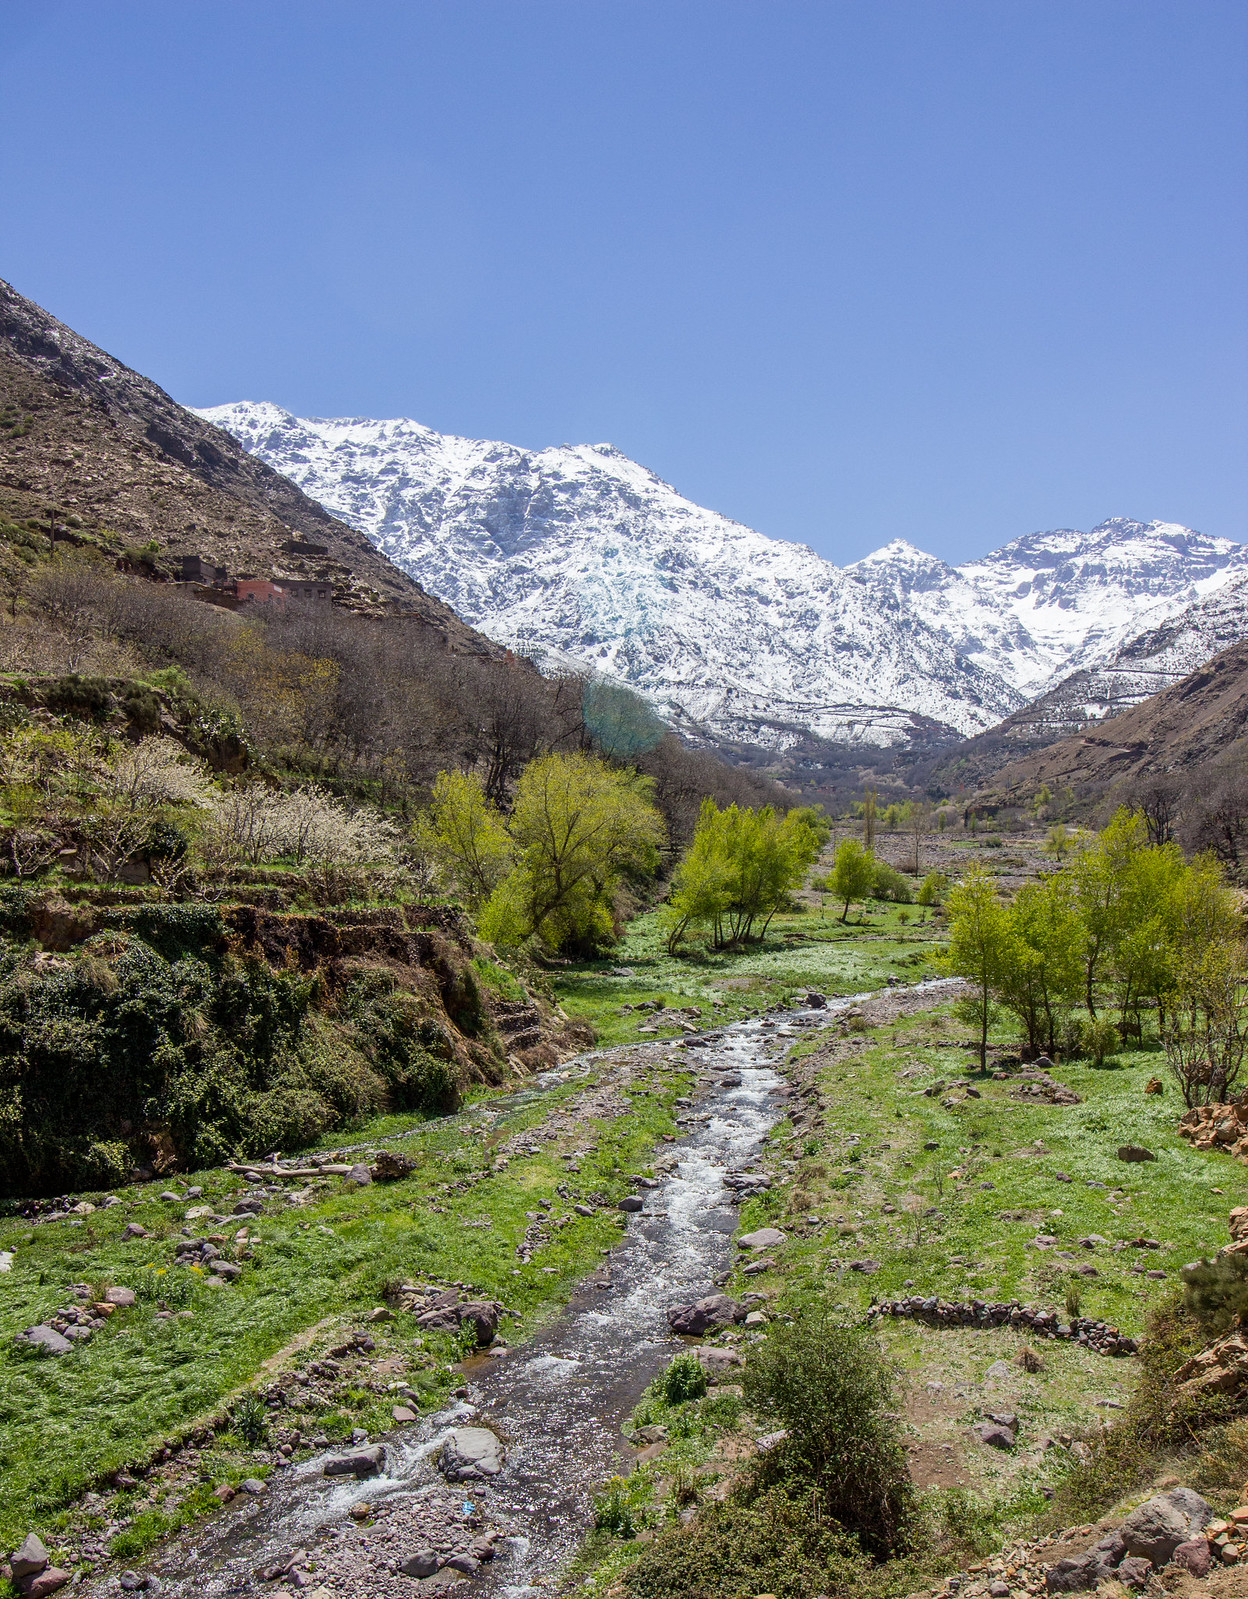 The Imlil valley, looking towards Toubkal